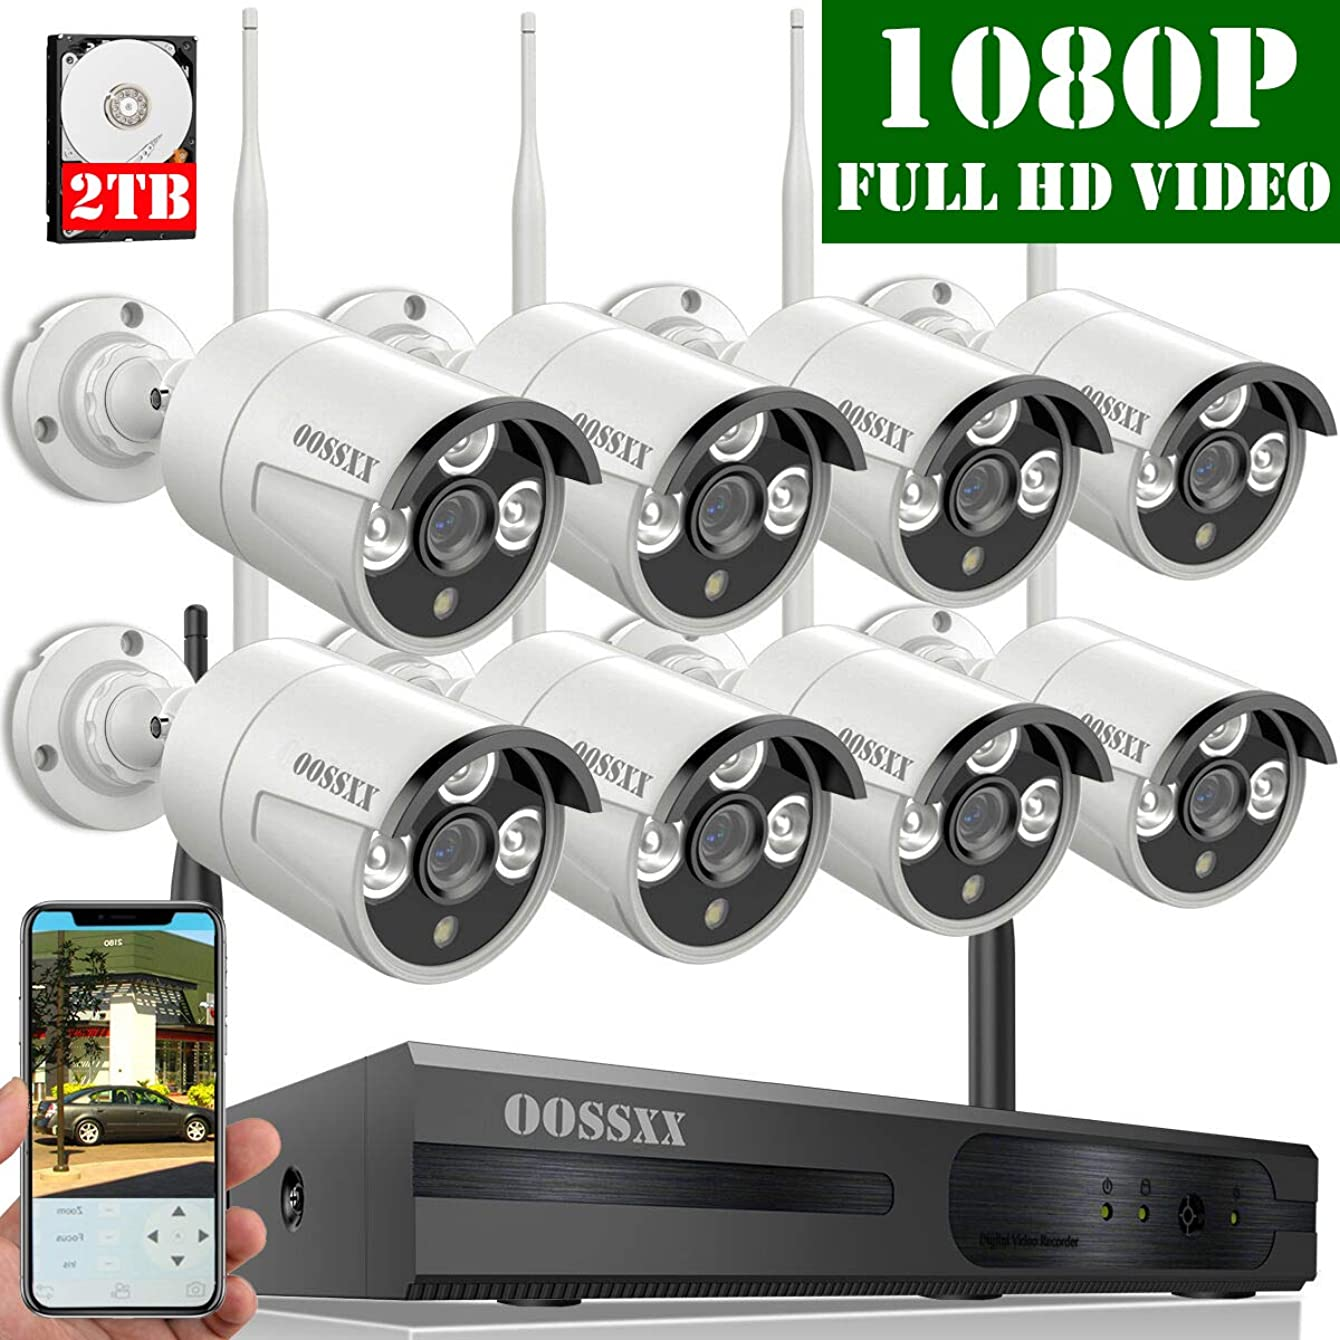 【2019 Update】 OOSSXX 8-Channel HD 1080P Wireless Security Camera System,8Pcs 1080P 2.0 Megapixel Wireless Indoor/Outdoor IR Bullet IP Cameras,P2P,App, HDMI Cord & 2TB HDD Pre-Install